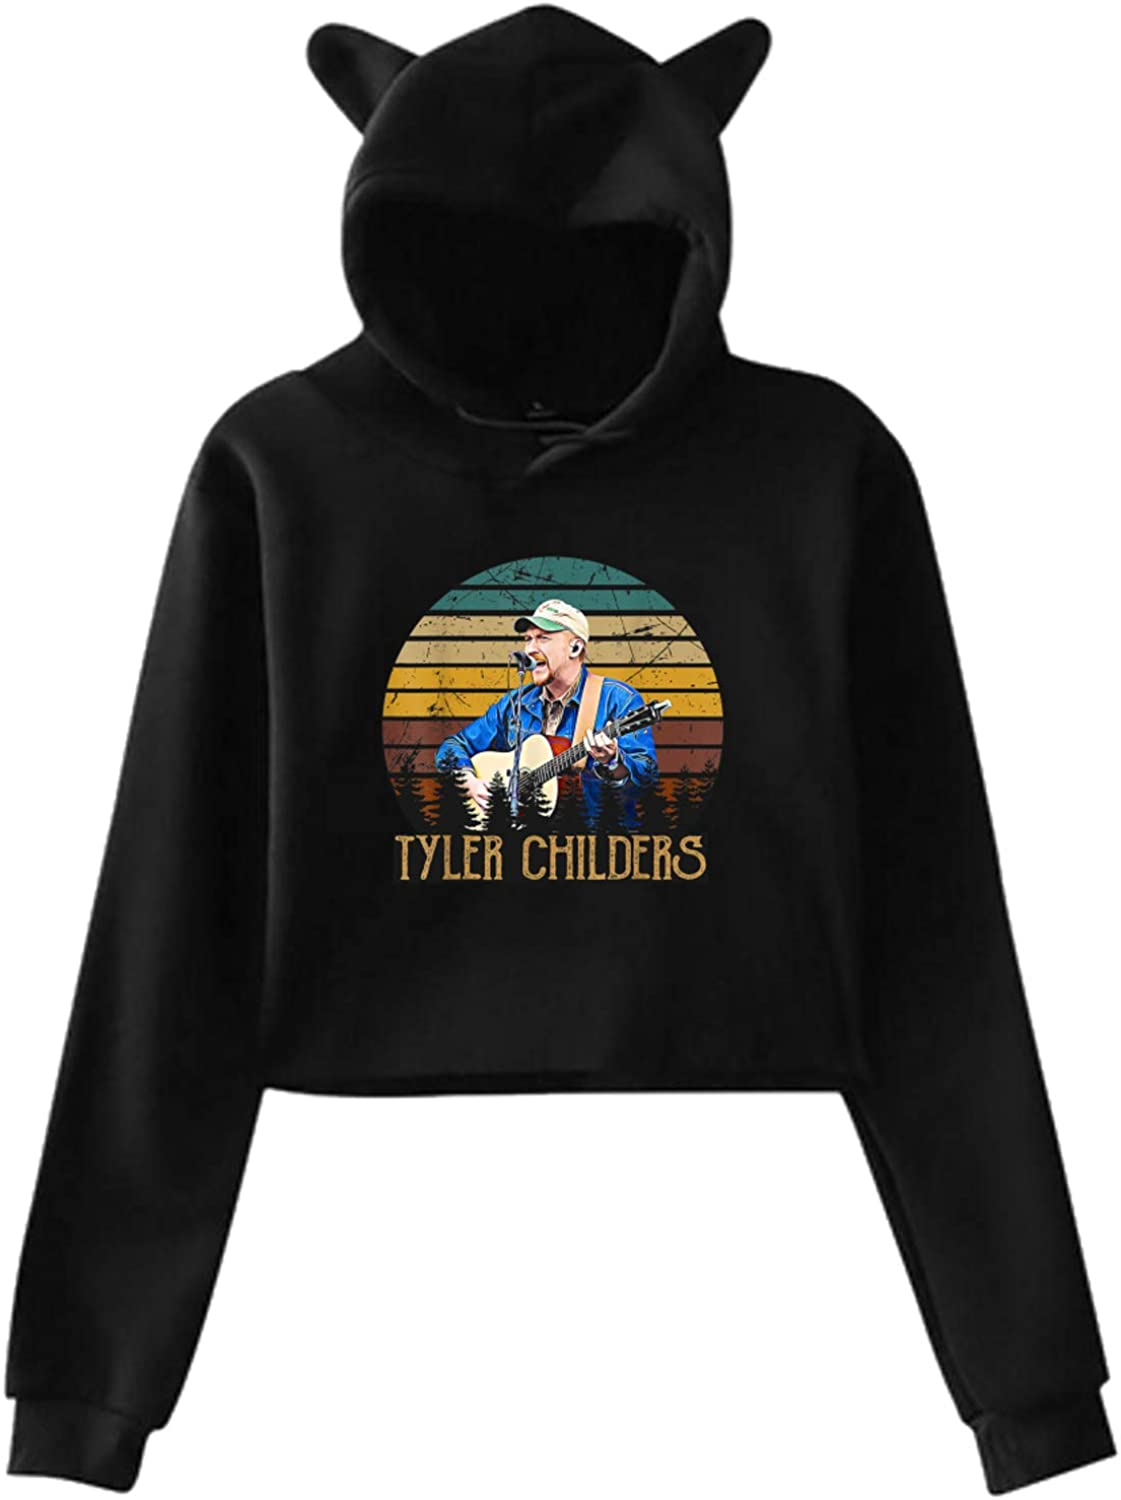 tyler childers Cat Ear Hoodie Sweater Hooded Pullover Girls Women Leak Navel Sweatshirt